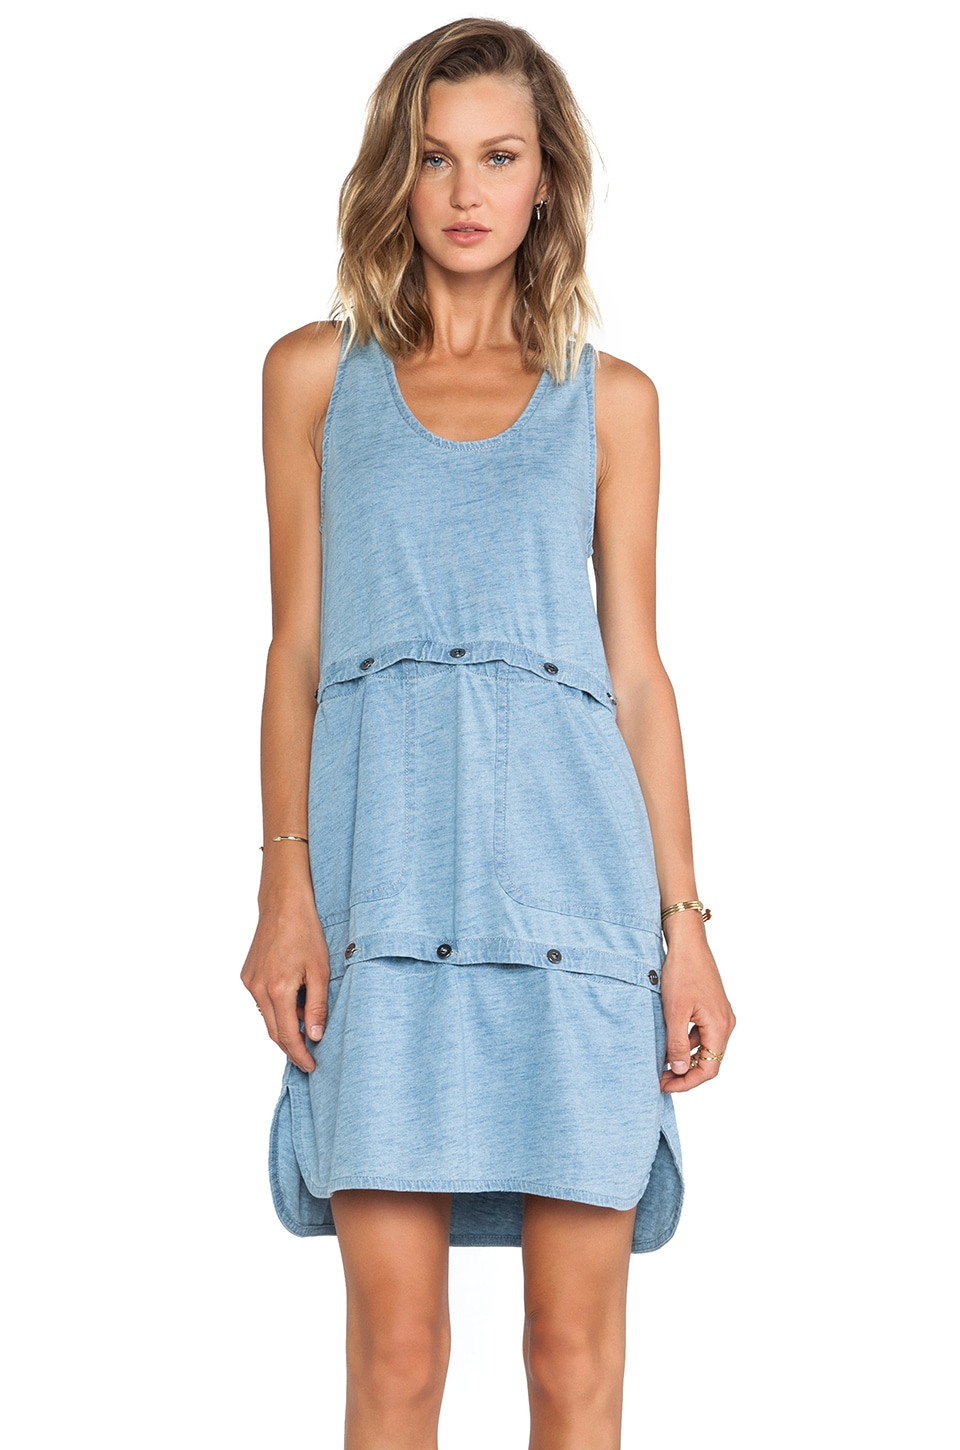 Marc by Marc Jacobs Yili Indigo Jersey Tank Dress/Crop Top in Light Indigo